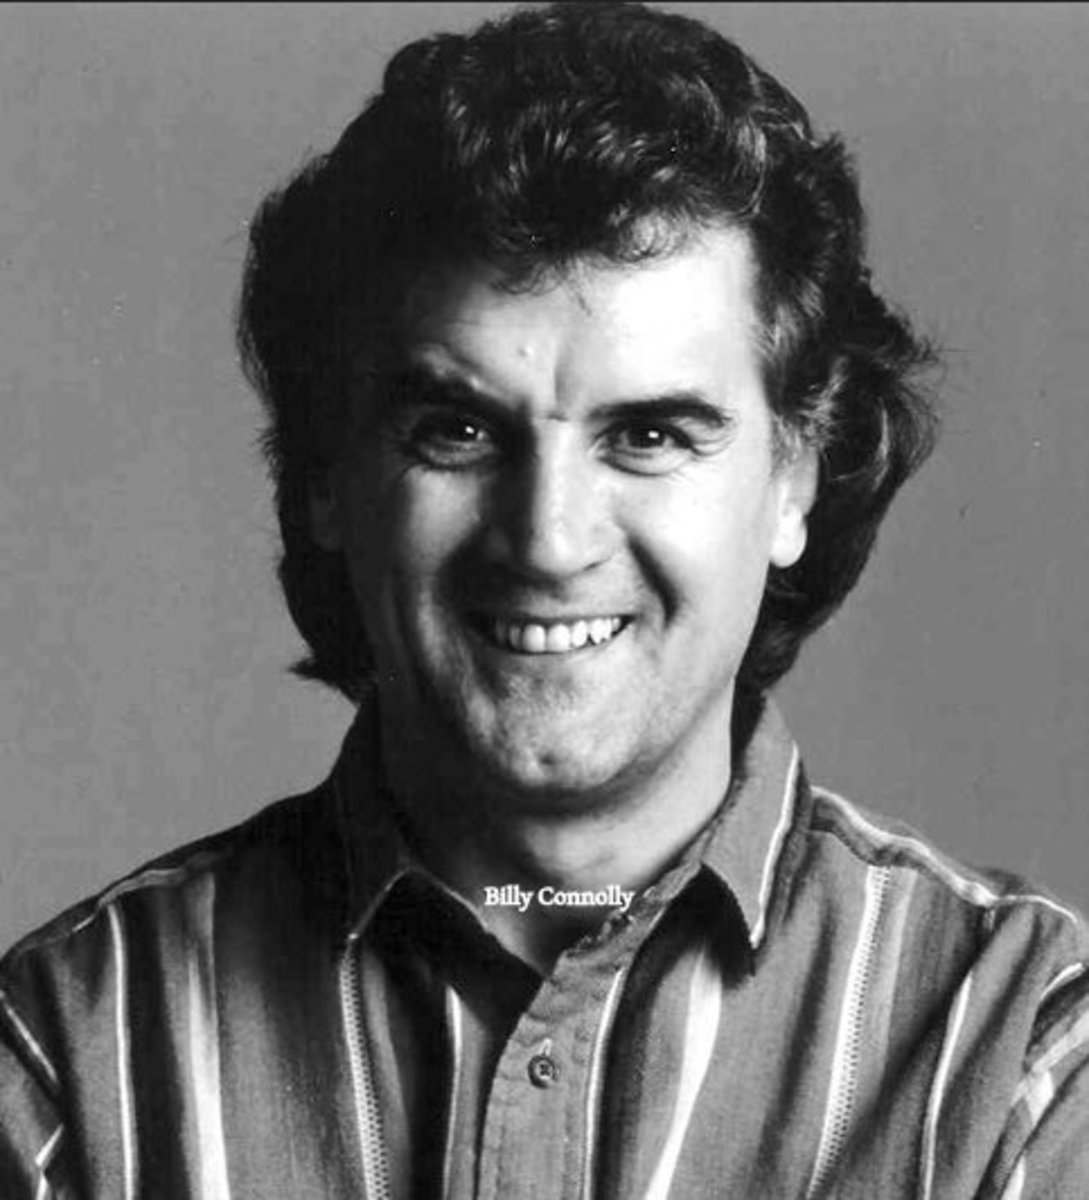 A younger Billy Connolly